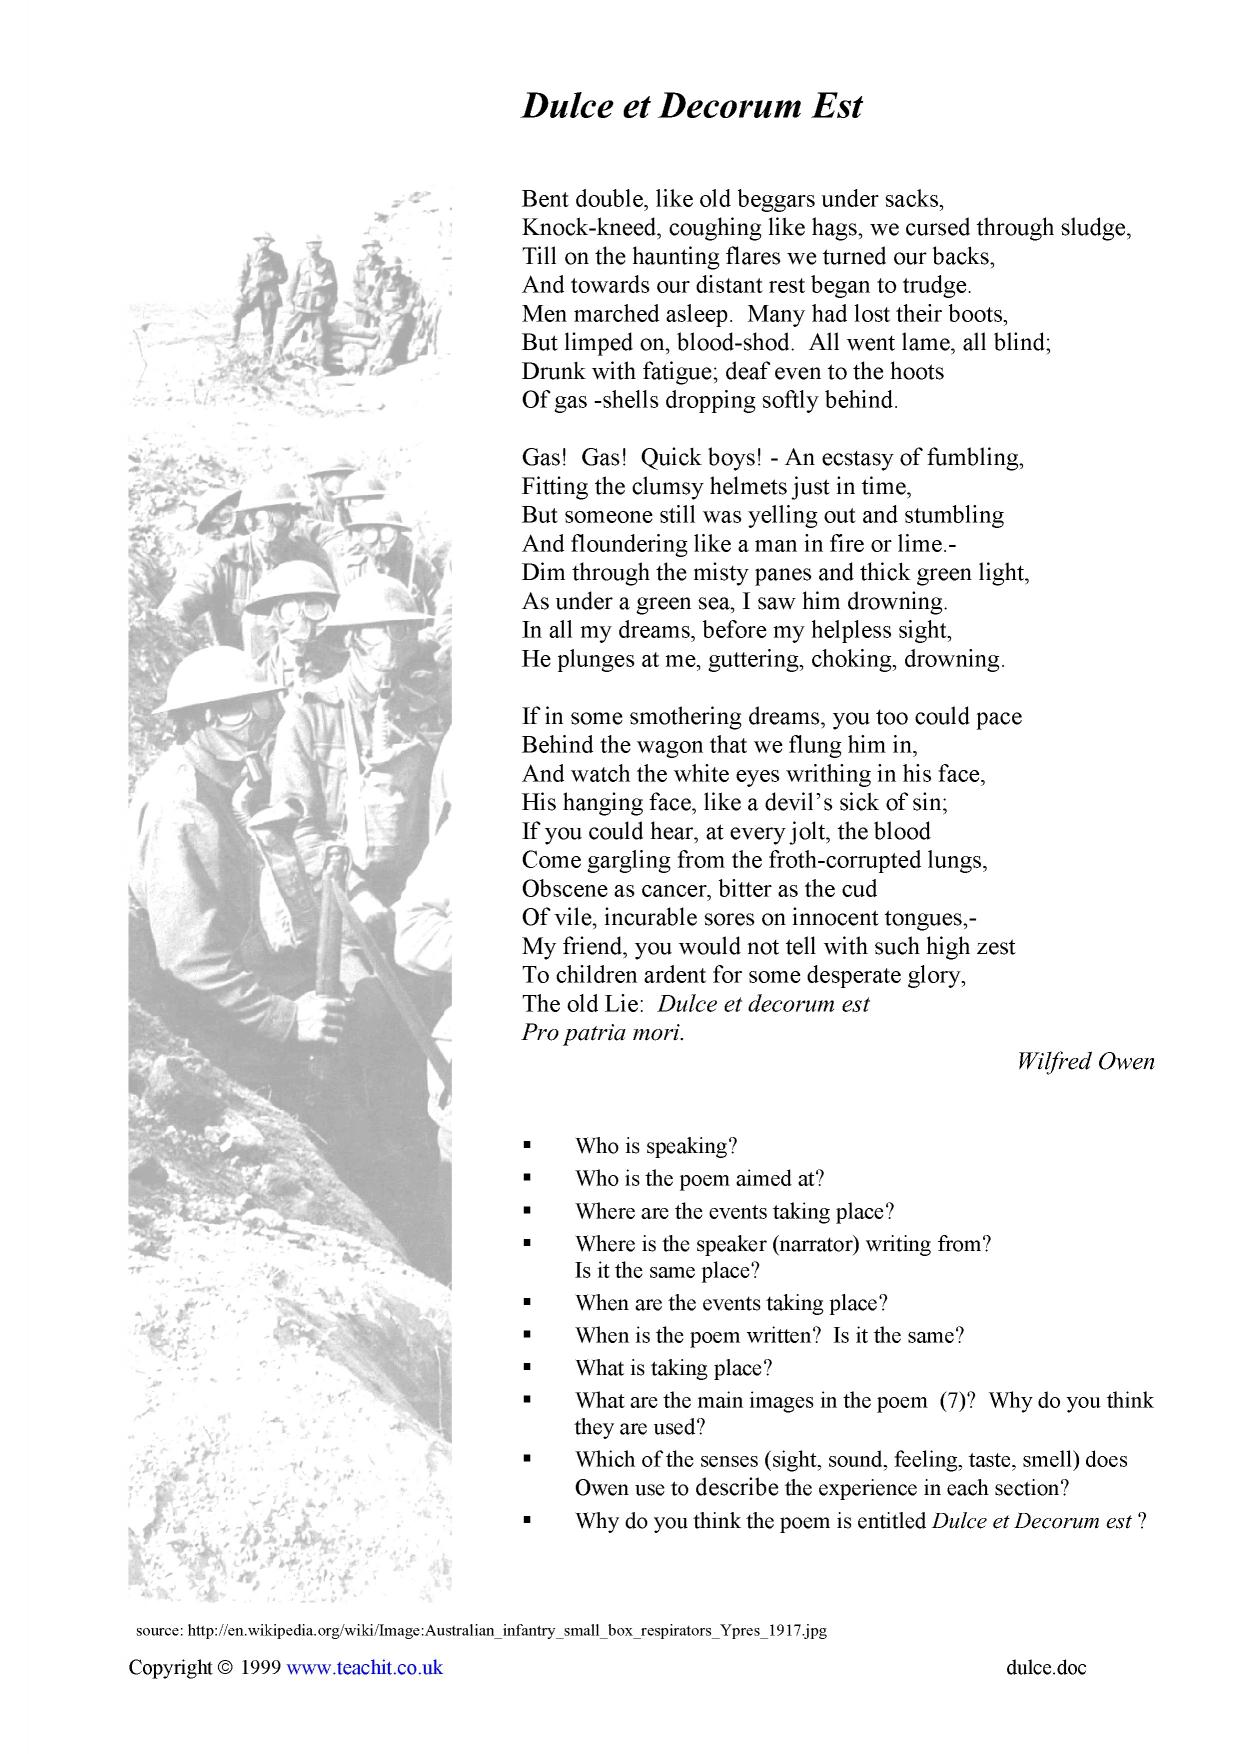 a literary analysis and a comparison of anthem for doomed youth and dulce et decorum est by wilfred  An analysis of dulce et decorum est  dulce analysis 1 dulce et decorum  overviewwilfred owen's poem dulce et decorum.